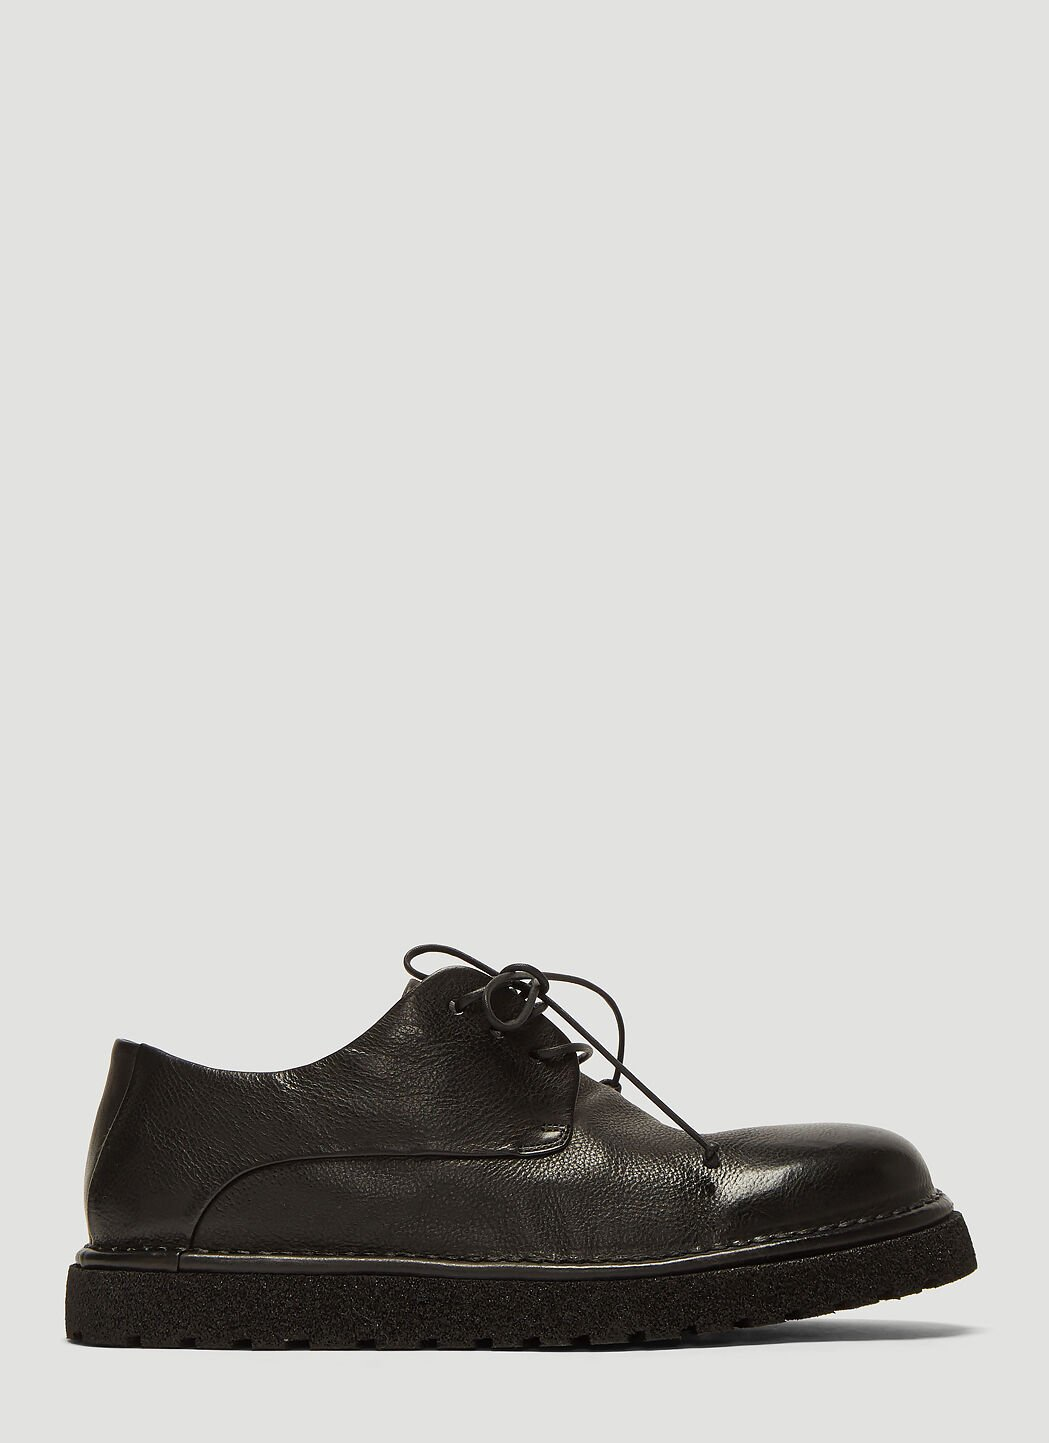 Marsèll Shoes Pallottola Pomice Derby Shoes in Black